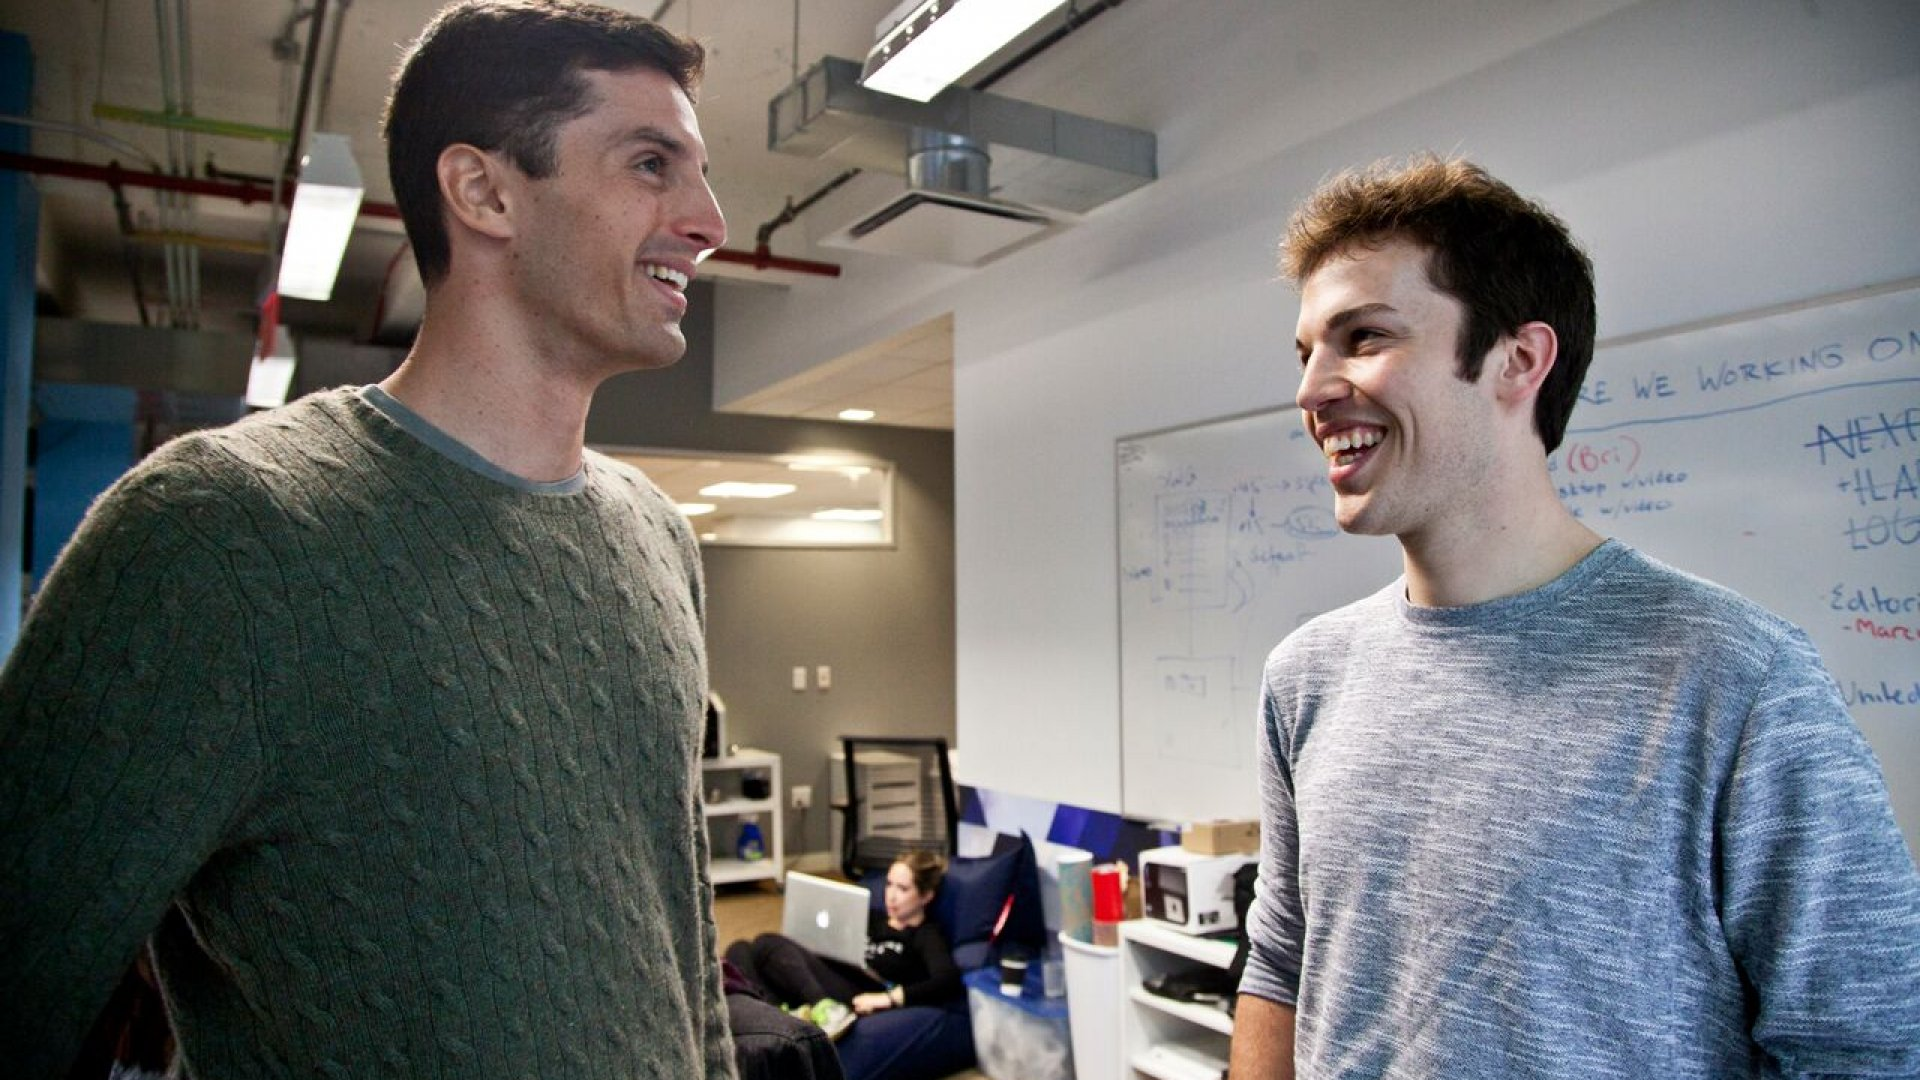 Mic founders Chris Altchek and Jake Horowitz have grown their media startup to reach 30 million monthly viewers.